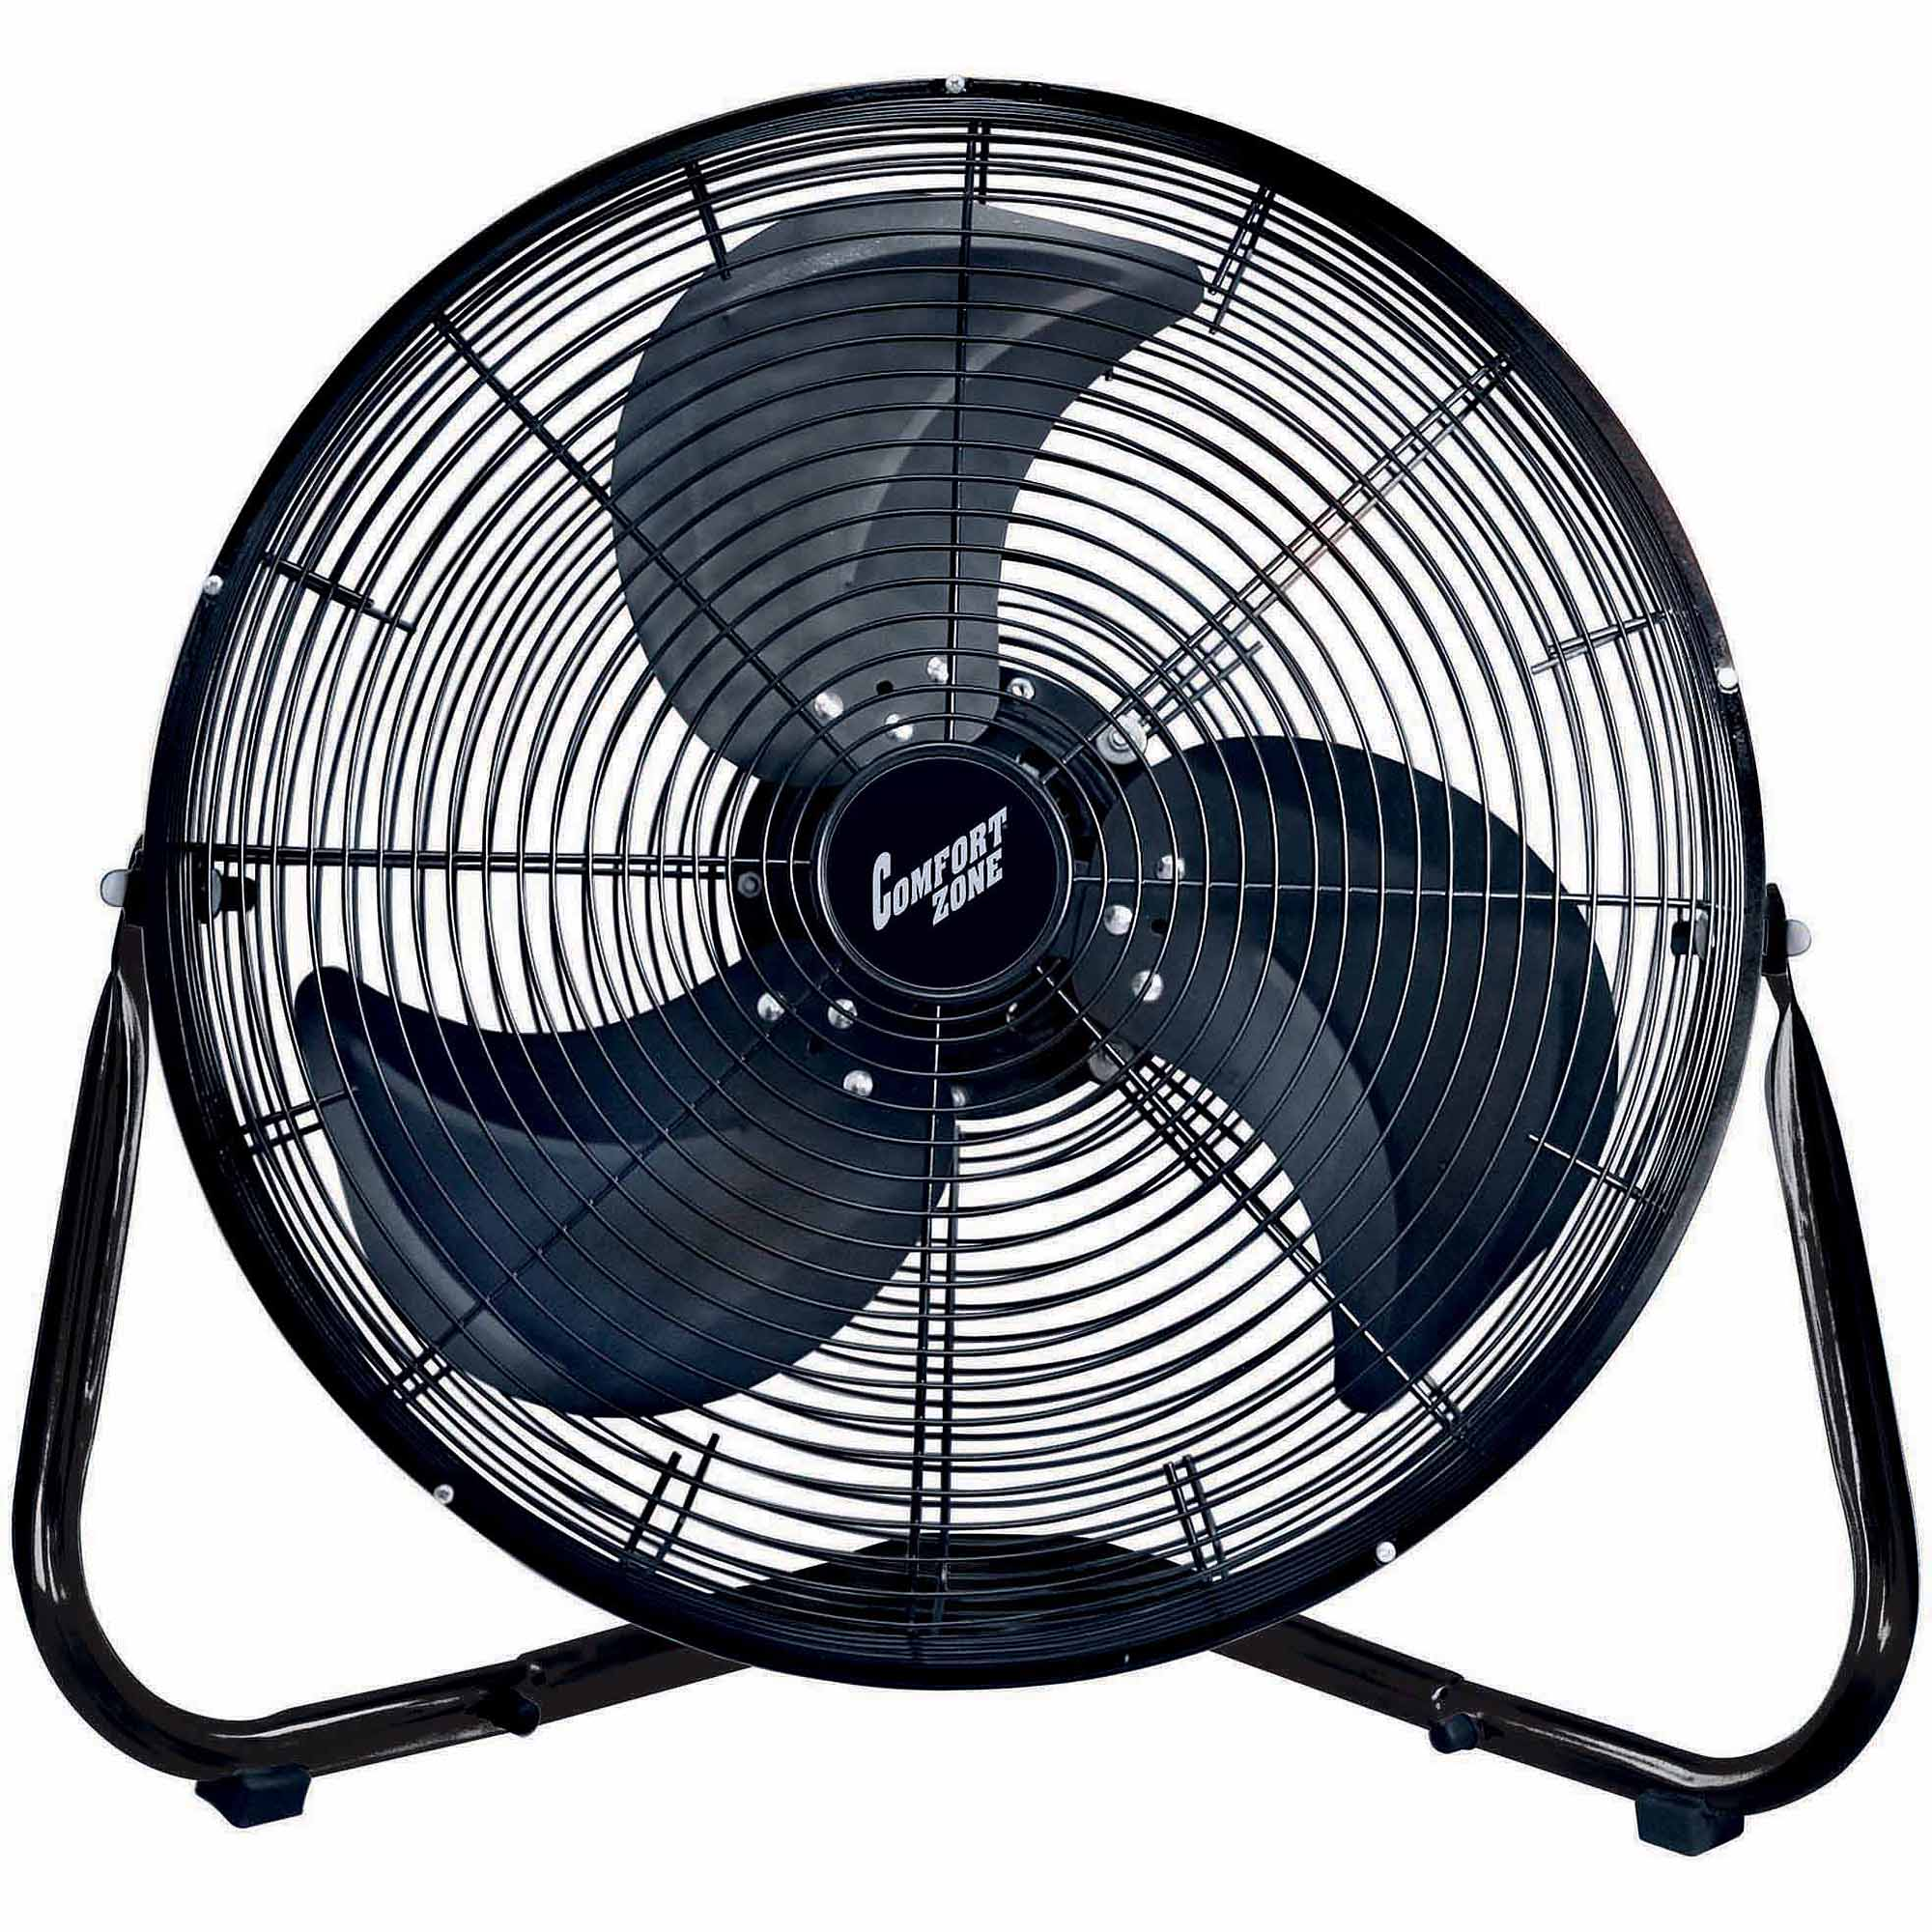 "Comfort Zone 18"" HV Cradle Floor Fan, Black"